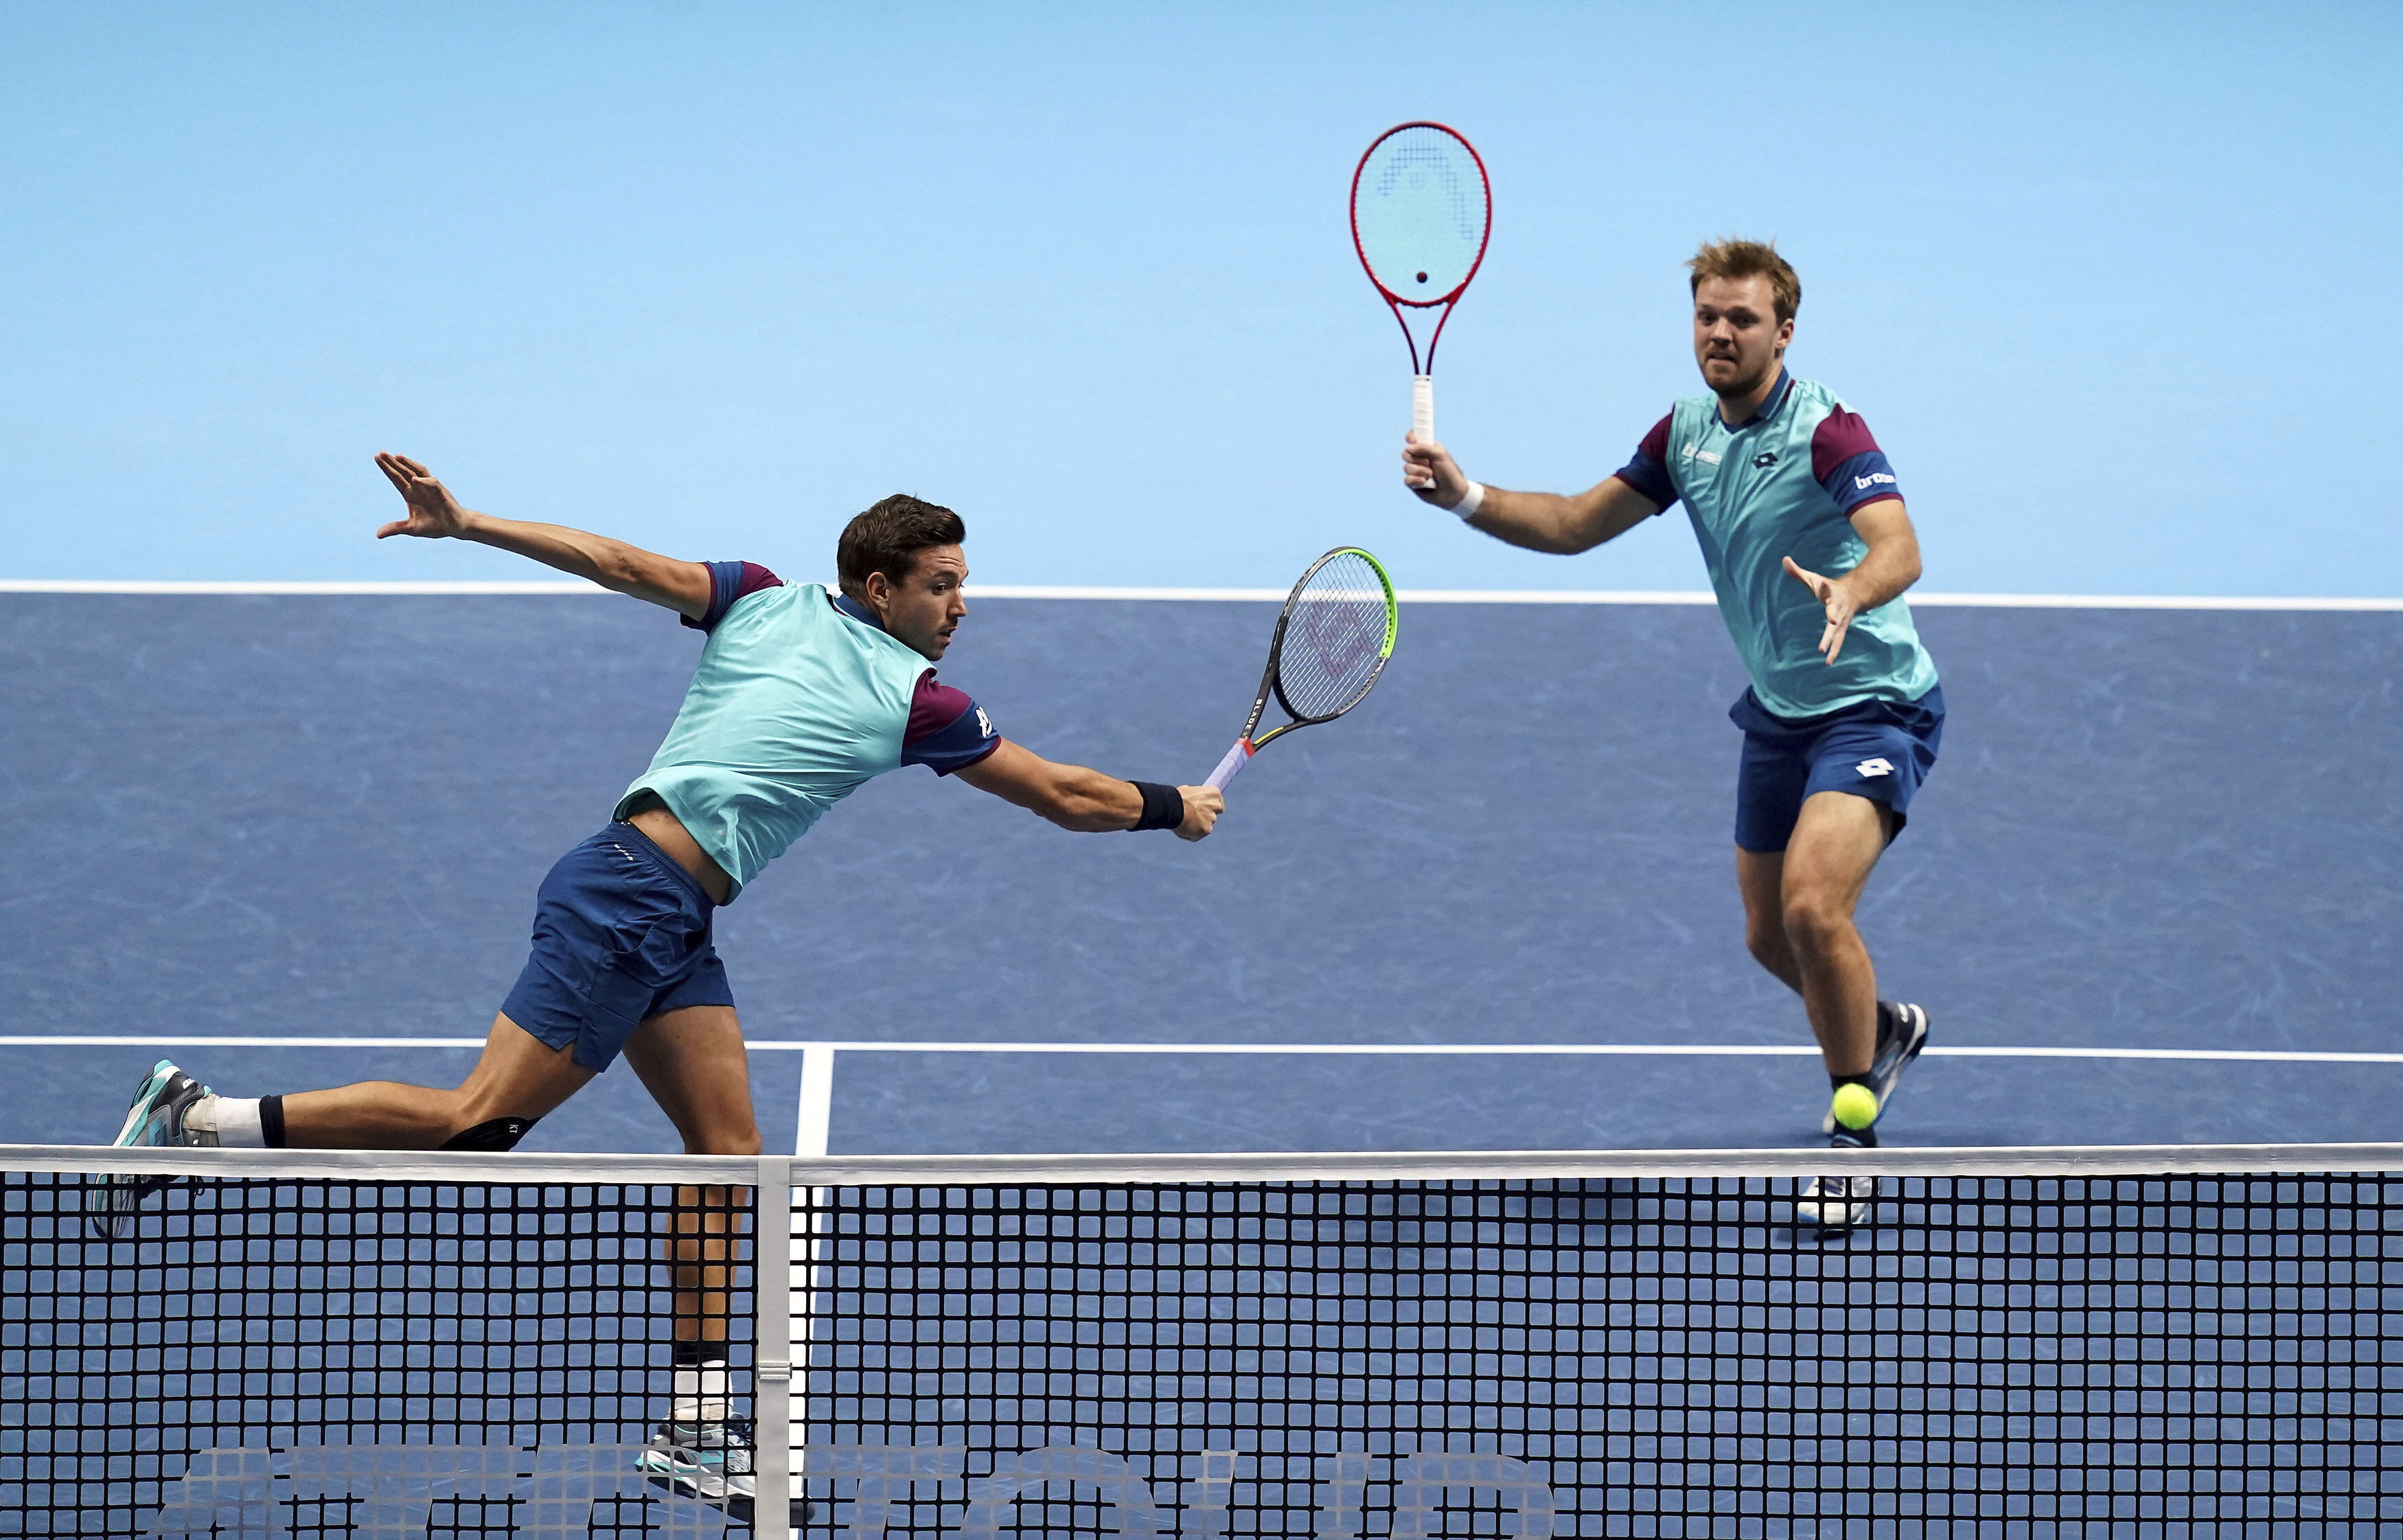 Kevin Krawietz and Andreas Mies of Germany, in action against Croatia's Nikola Mektic and Netherland's Wesley Koolhof, during their doubles match on day one of the ATP Finals tennis championship at The O2 Arena, London, Sunday Nov. 15, 2020. (John Walton/PA via AP)